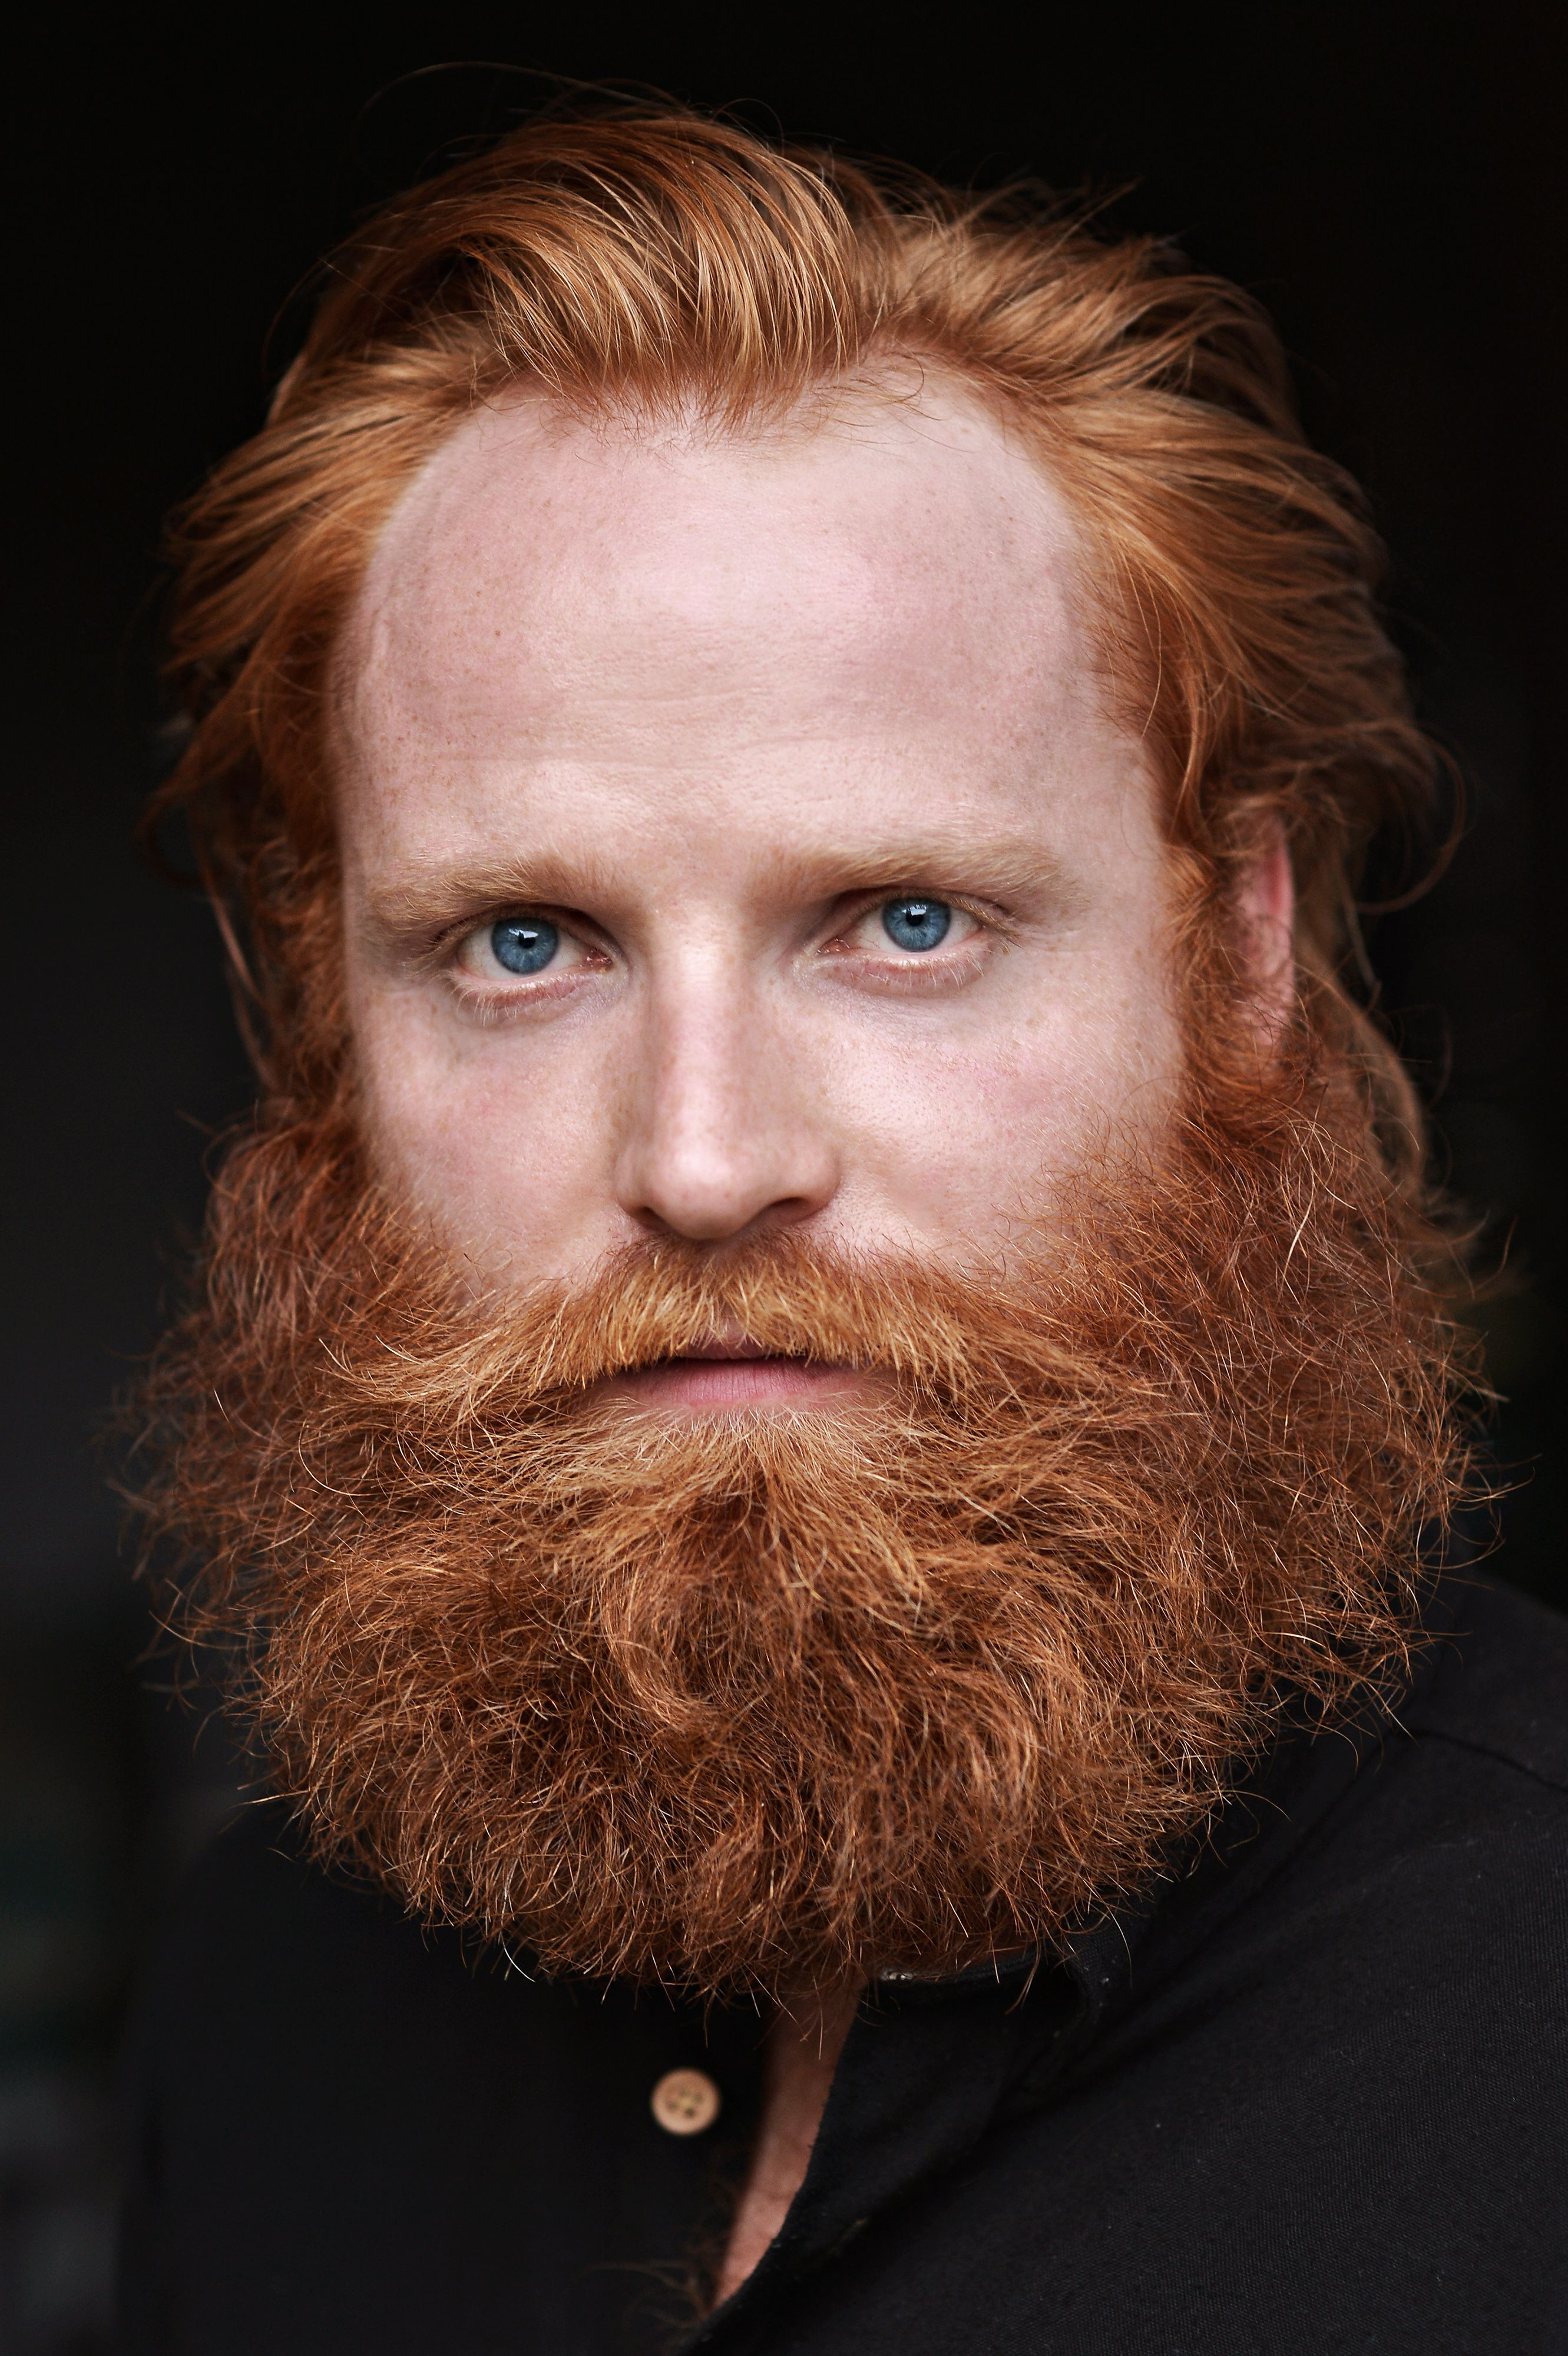 Magnus Bruun Game Of Thrones And The Last Kingdom Men Photography The Last Kingdom Red Headed League